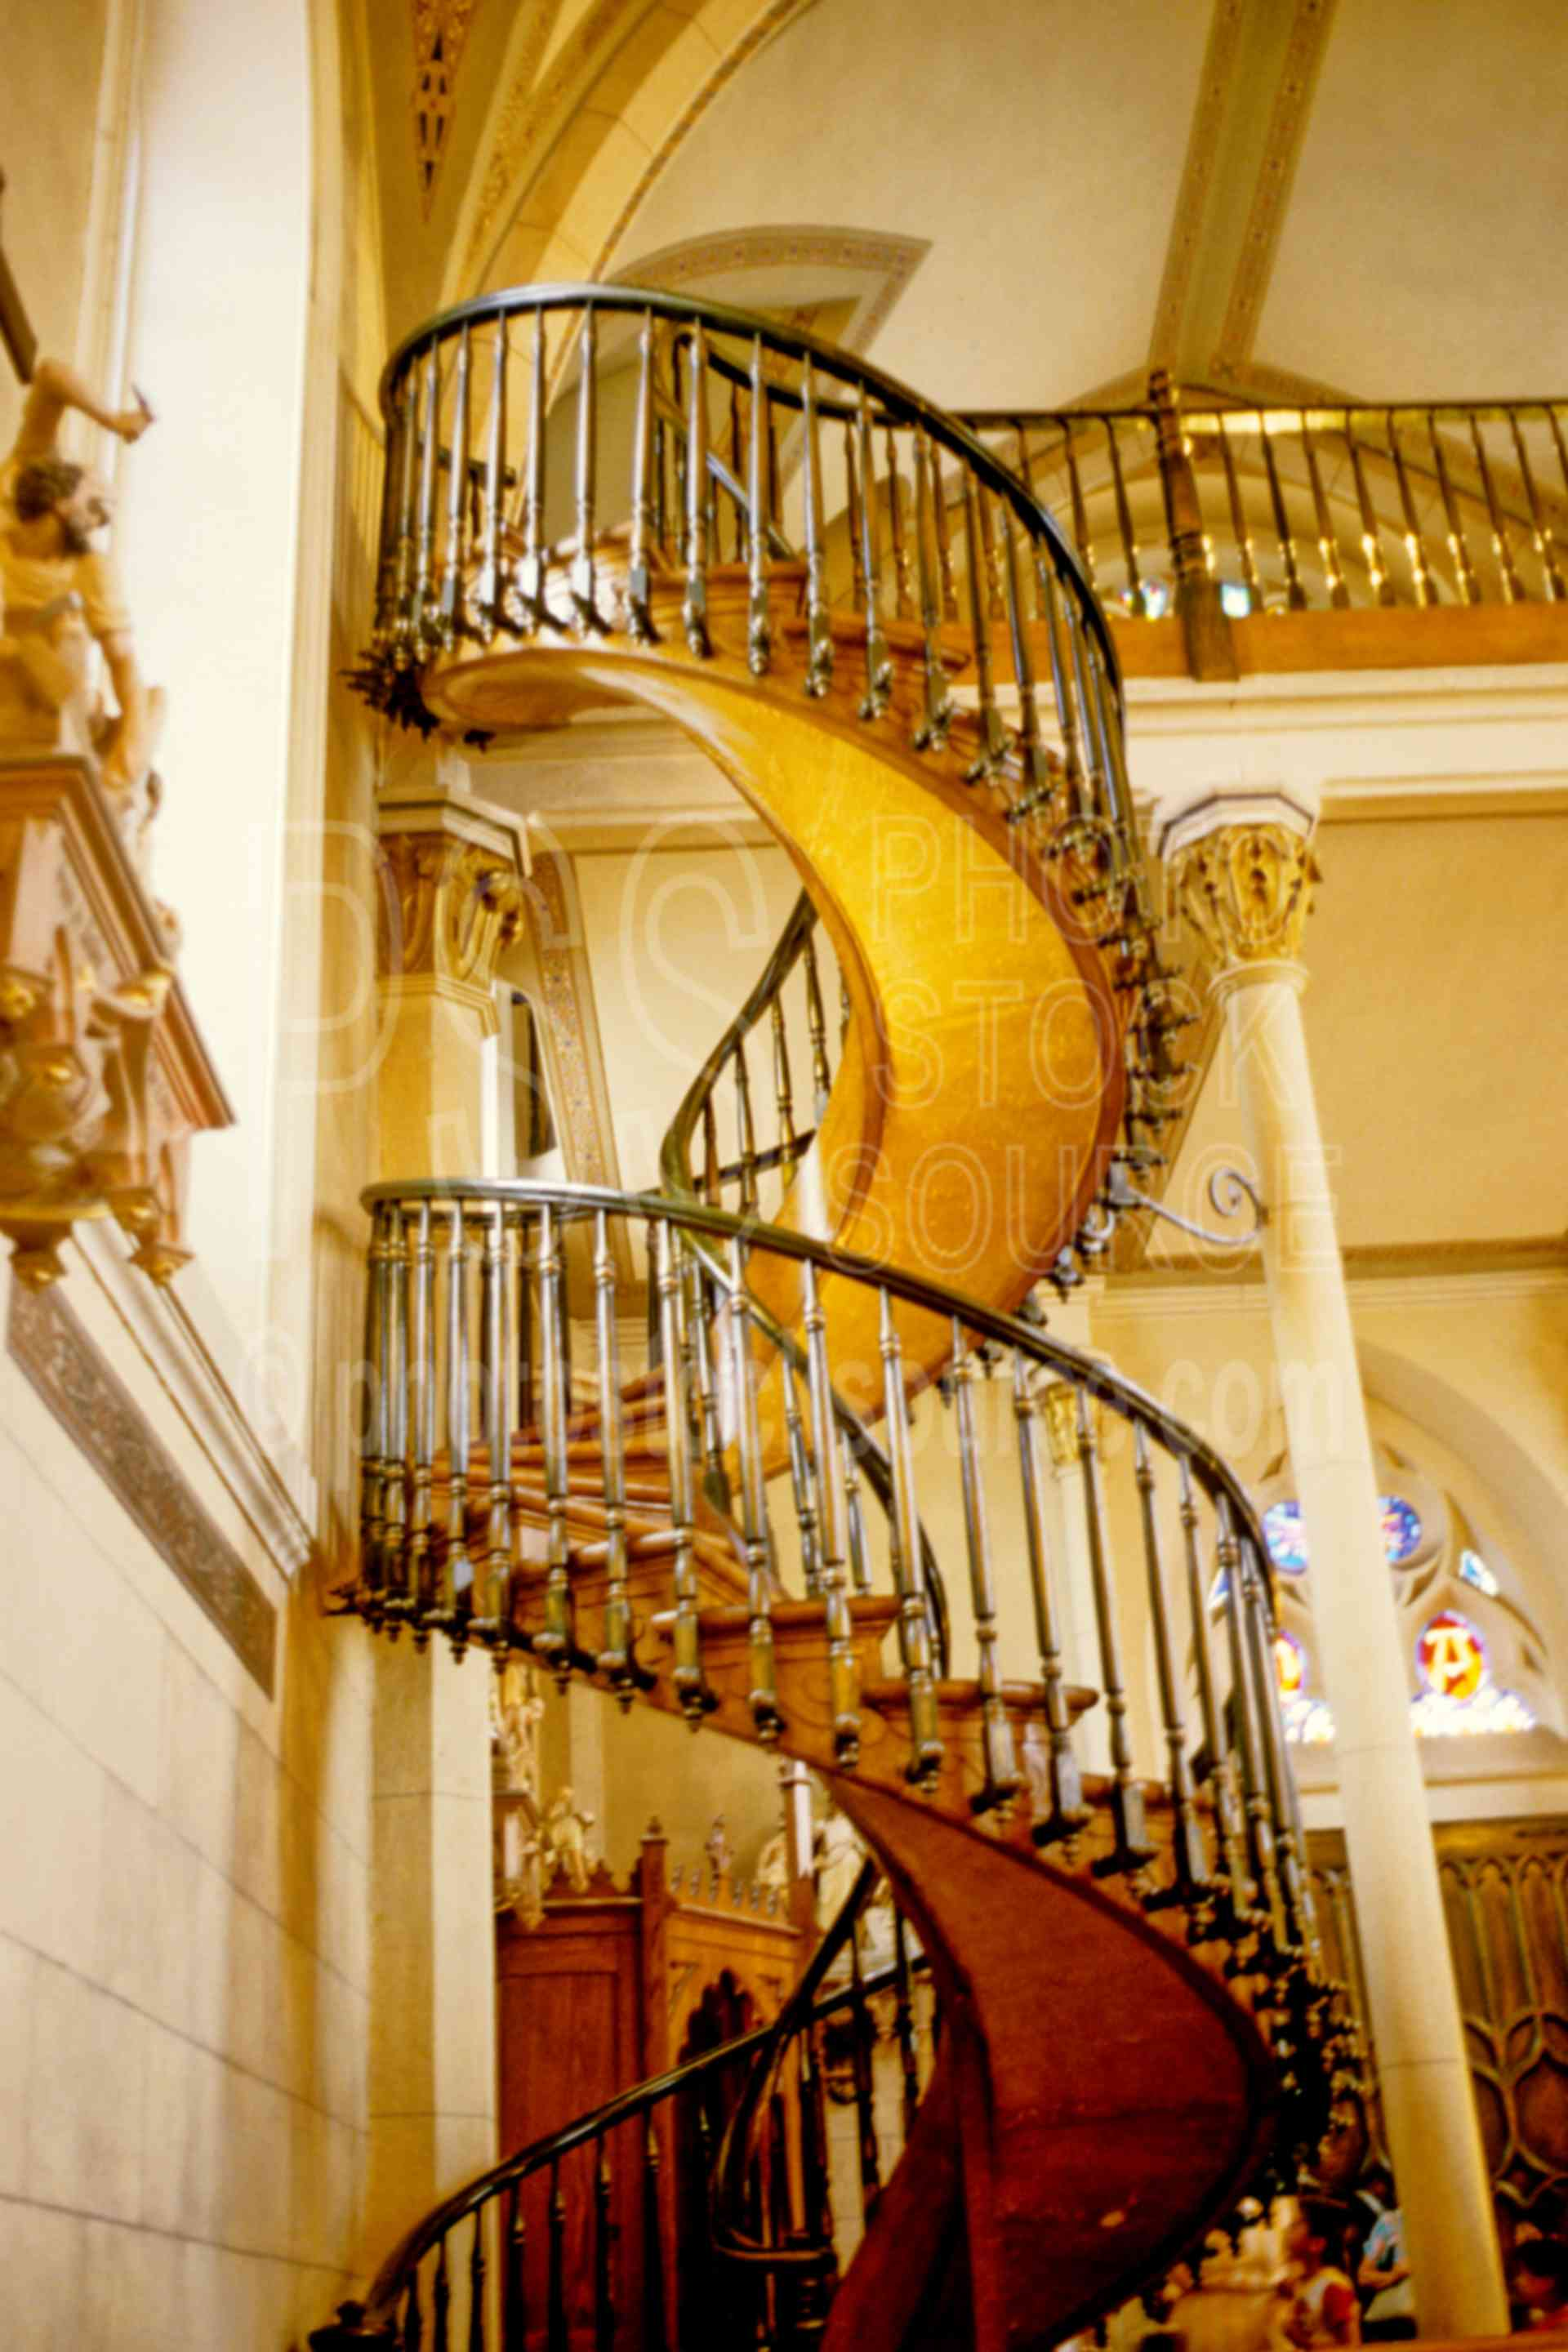 Spiral Staircase,chapel,church,staircase,carpenter,usas,spiral staircase,US Churches,churches